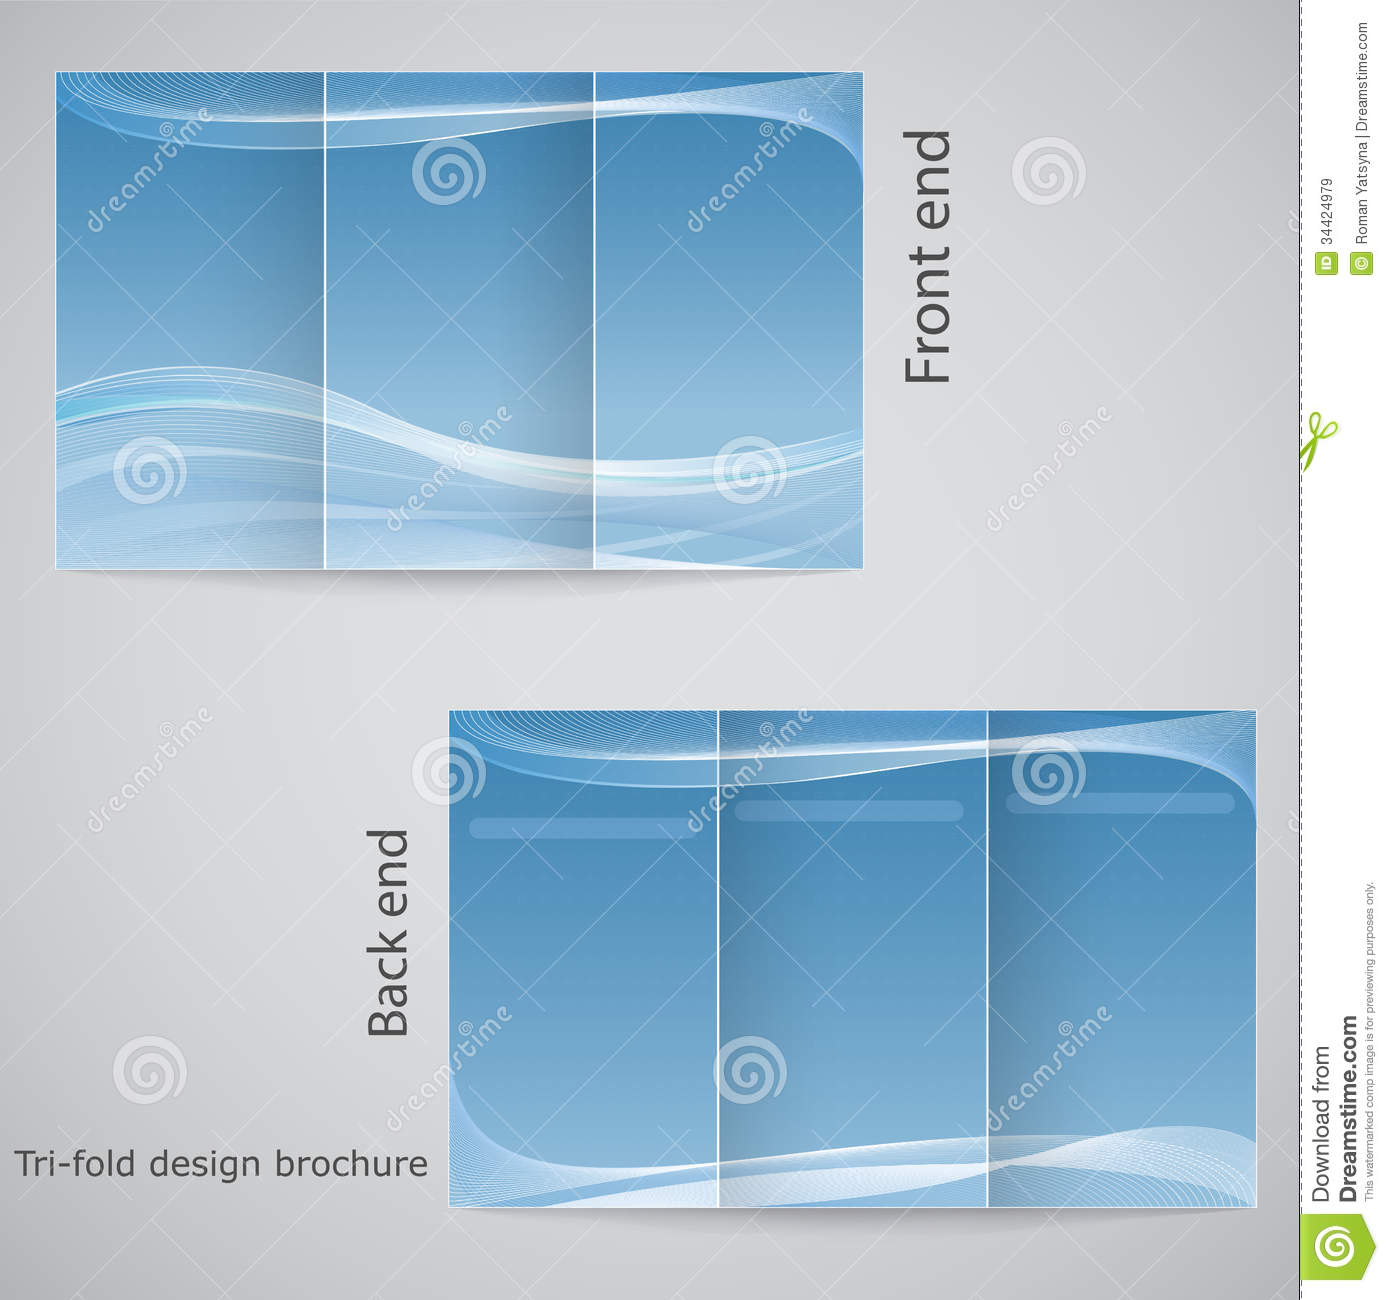 Trifold Brochure Design Stock Vector Illustration Of Handbill - Trifold brochure template